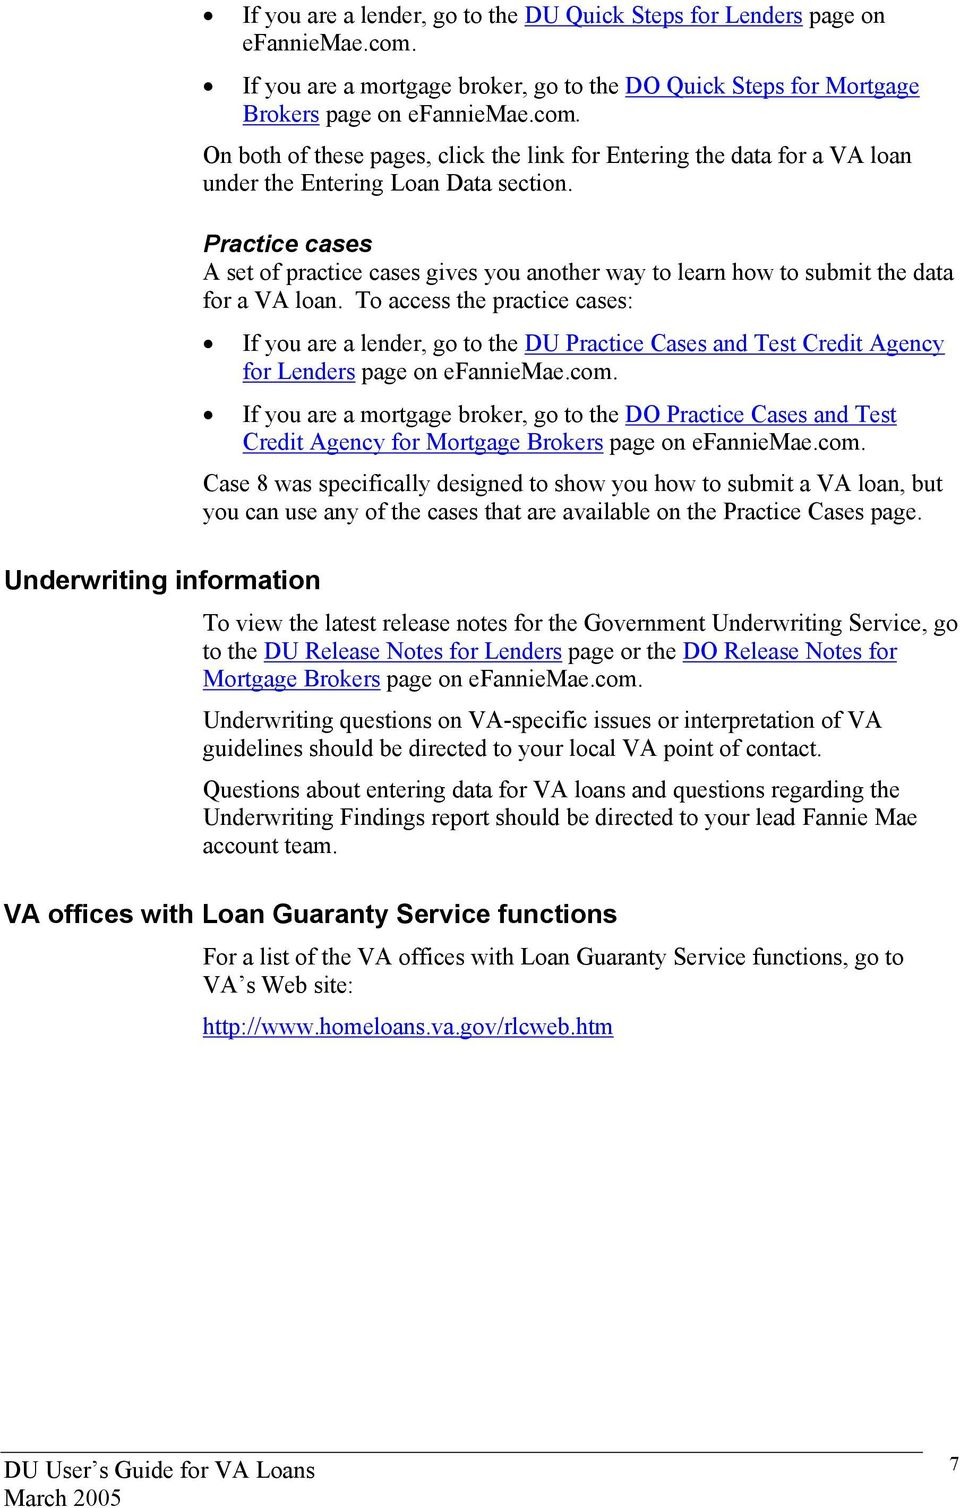 On both of these pages, click the link for Entering the data for a VA loan under the Entering Loan Data section.